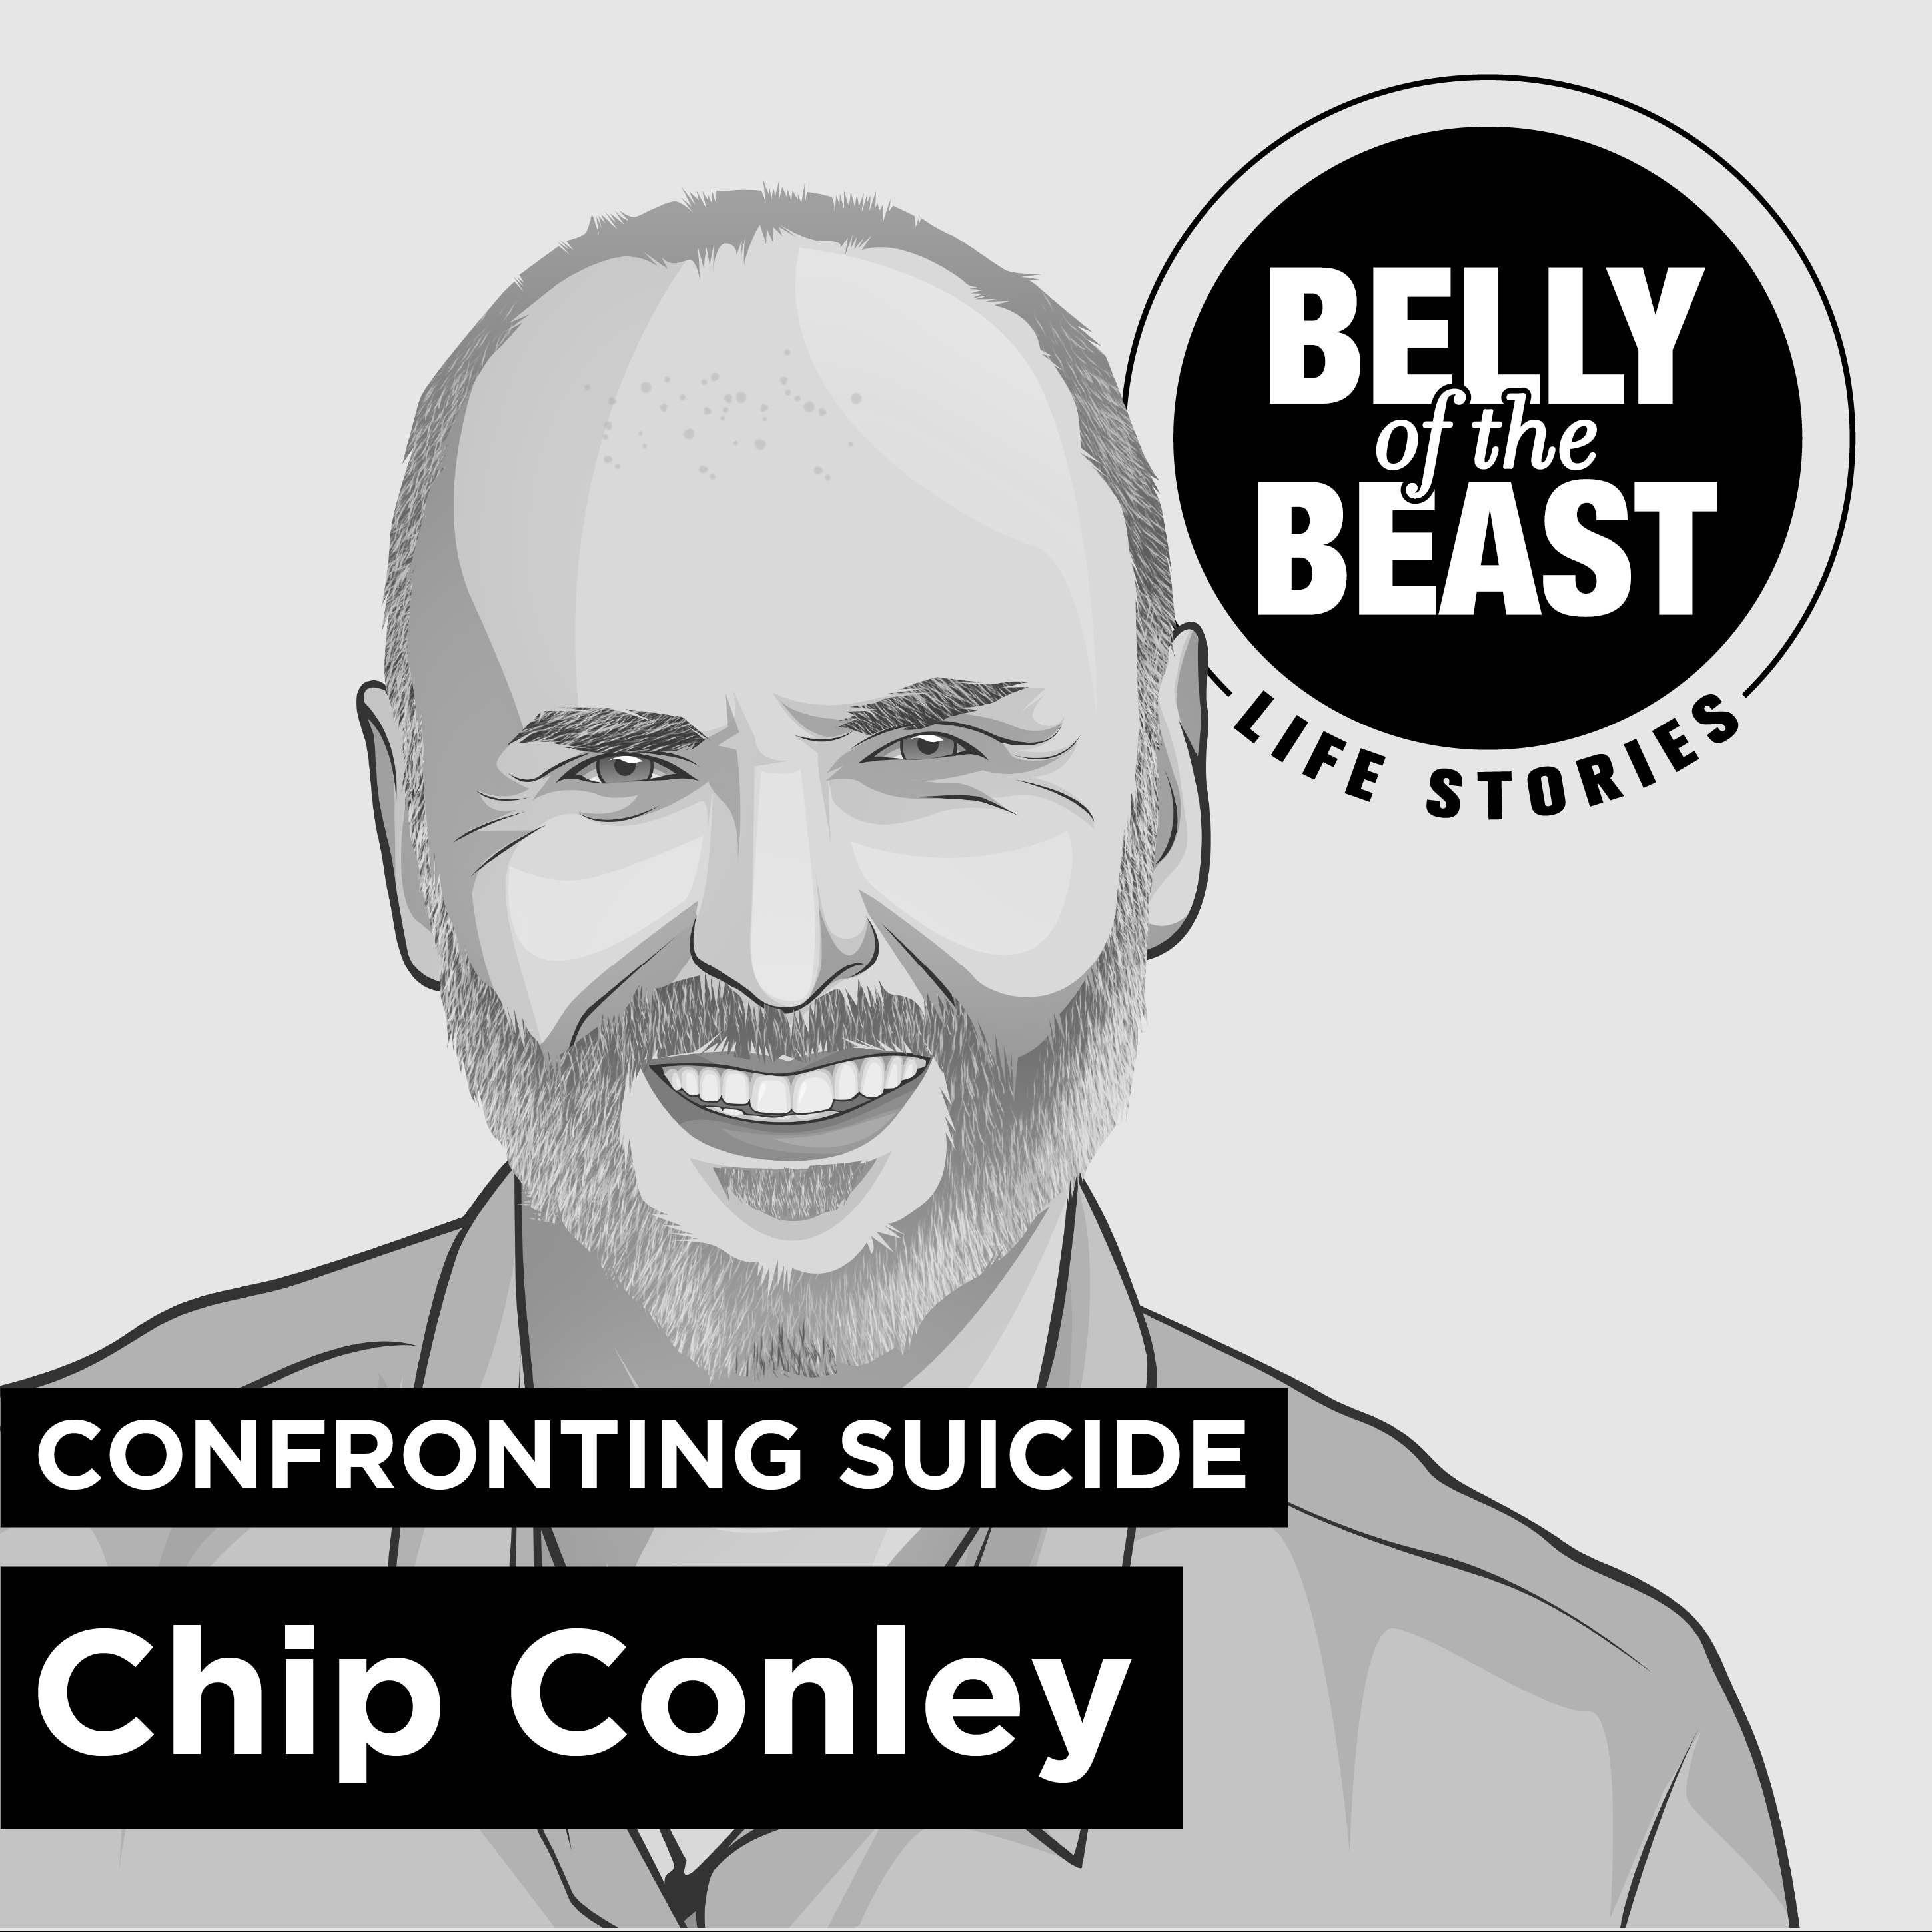 Artwork for podcast Belly of the Beast Life Stories & Beyond with David All